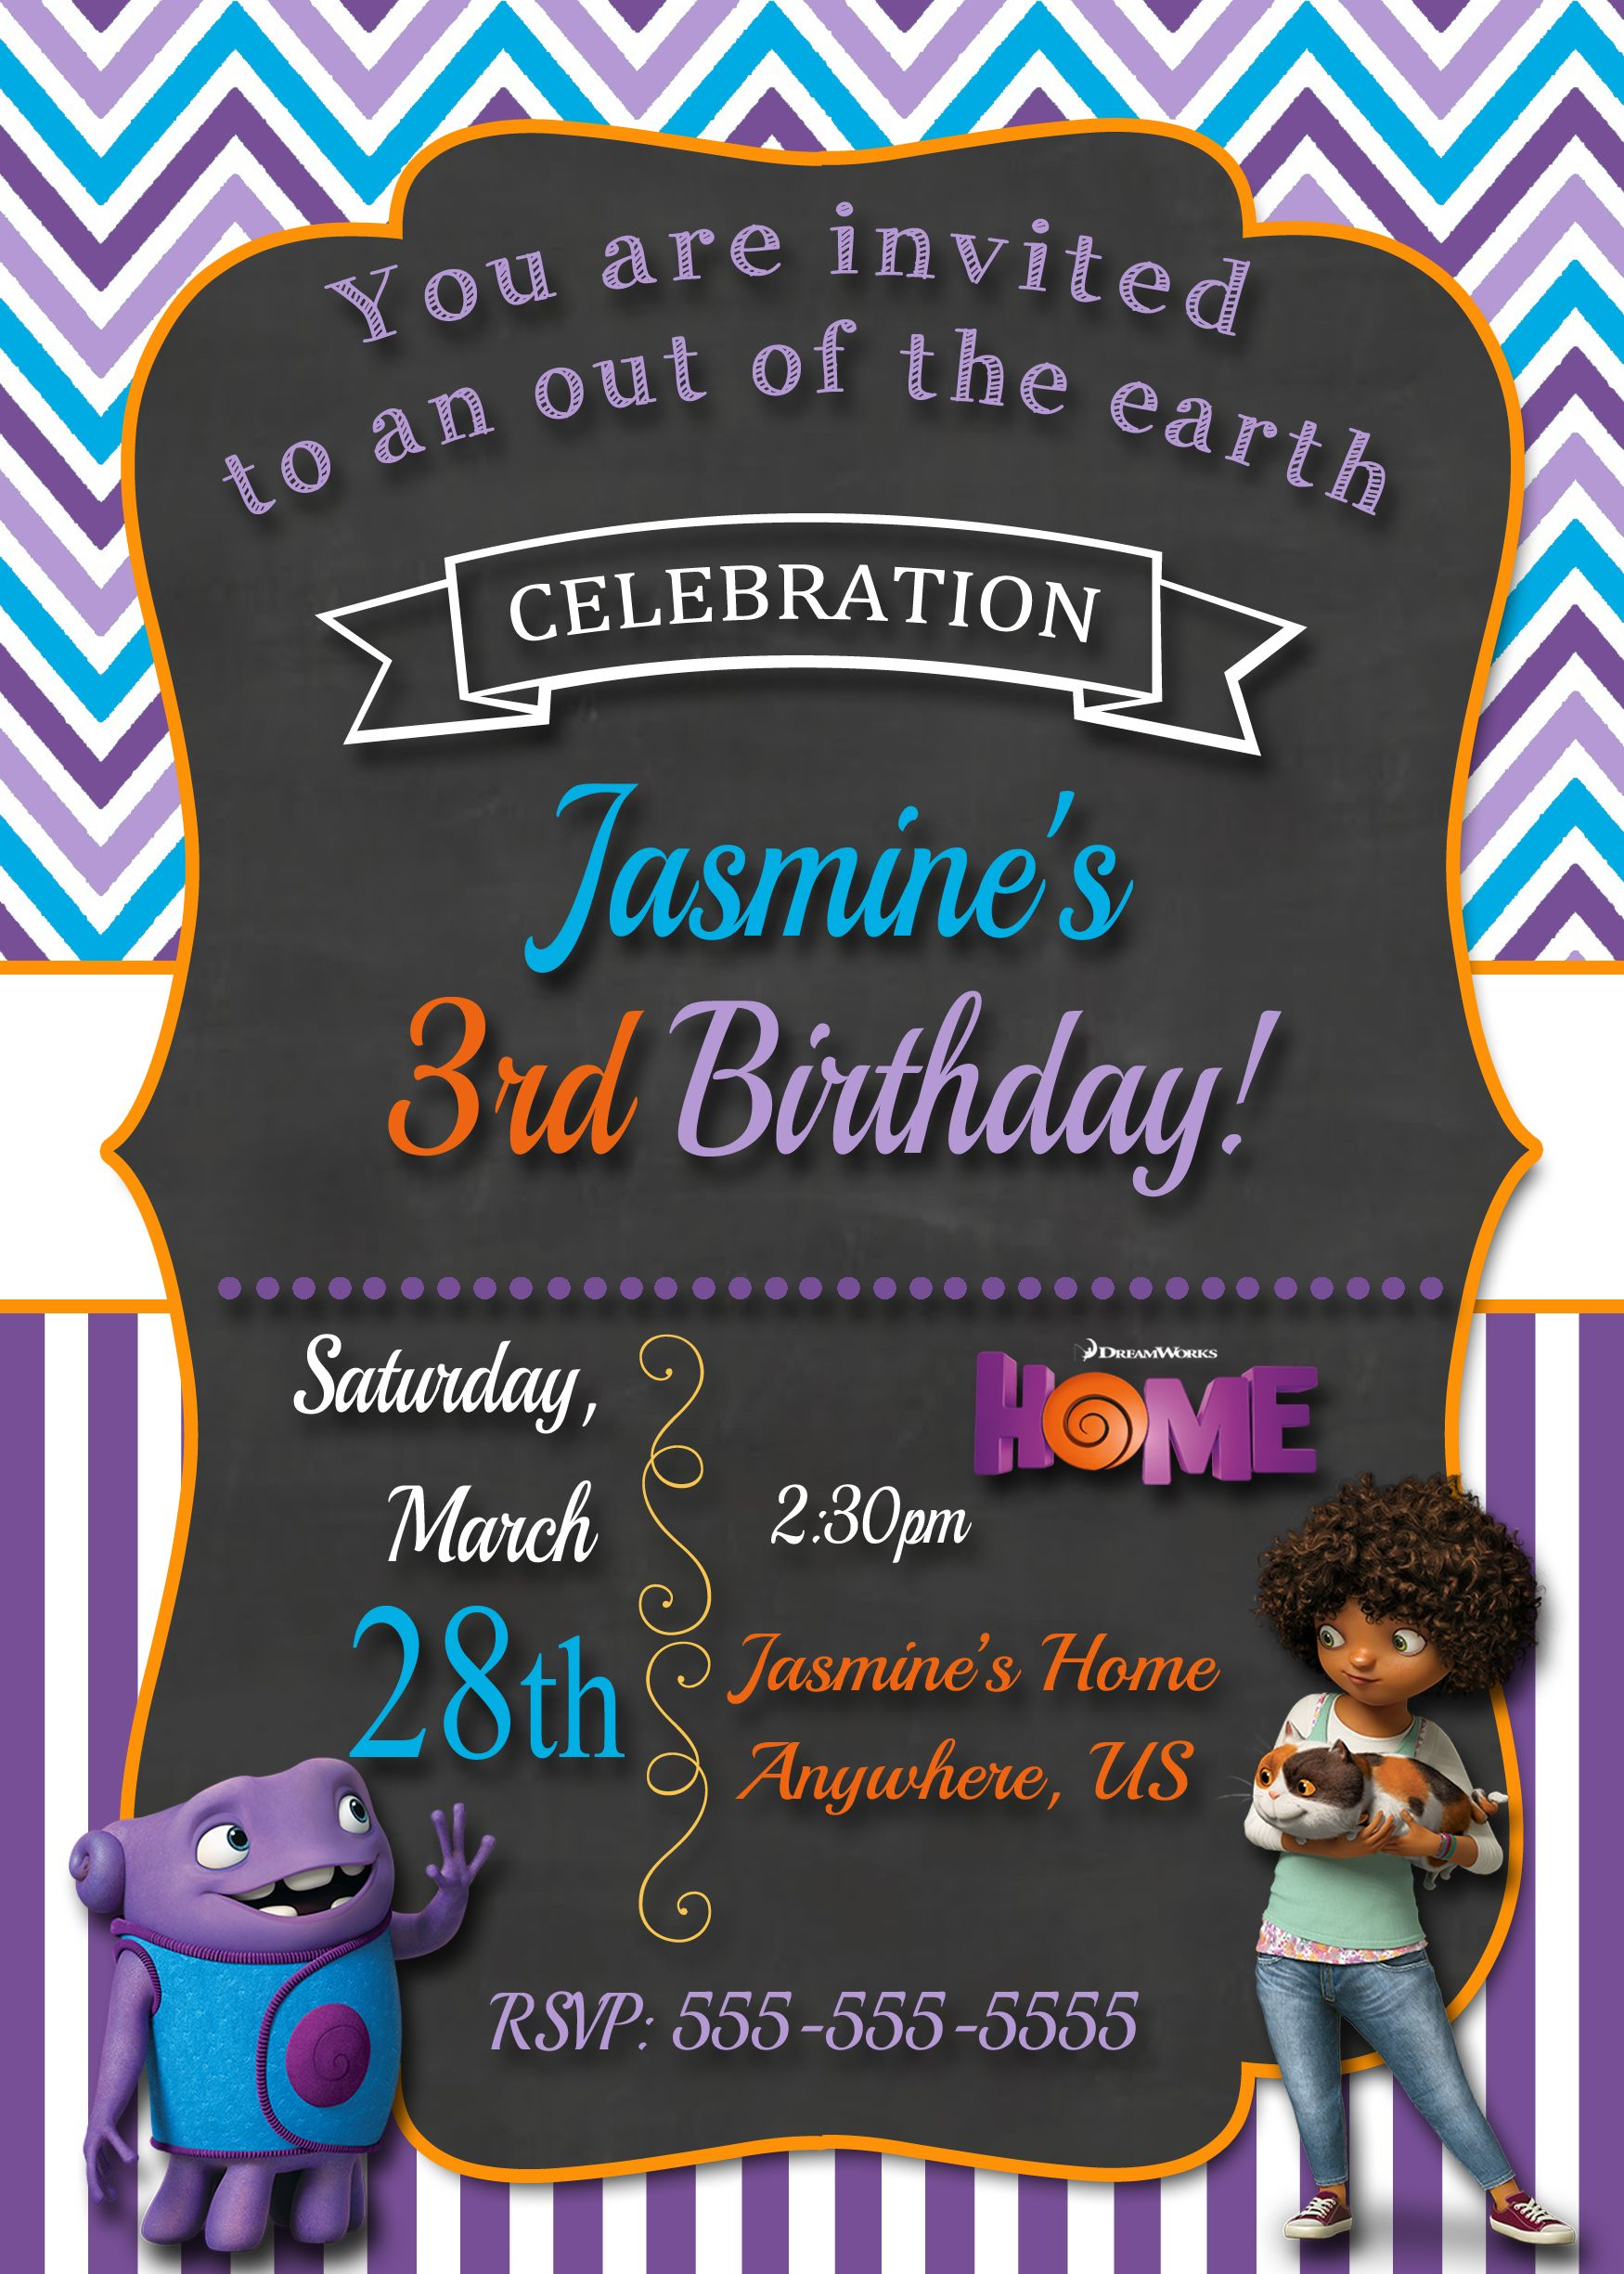 Dreamworks Home Movie Birthday Invitations 899 available at www